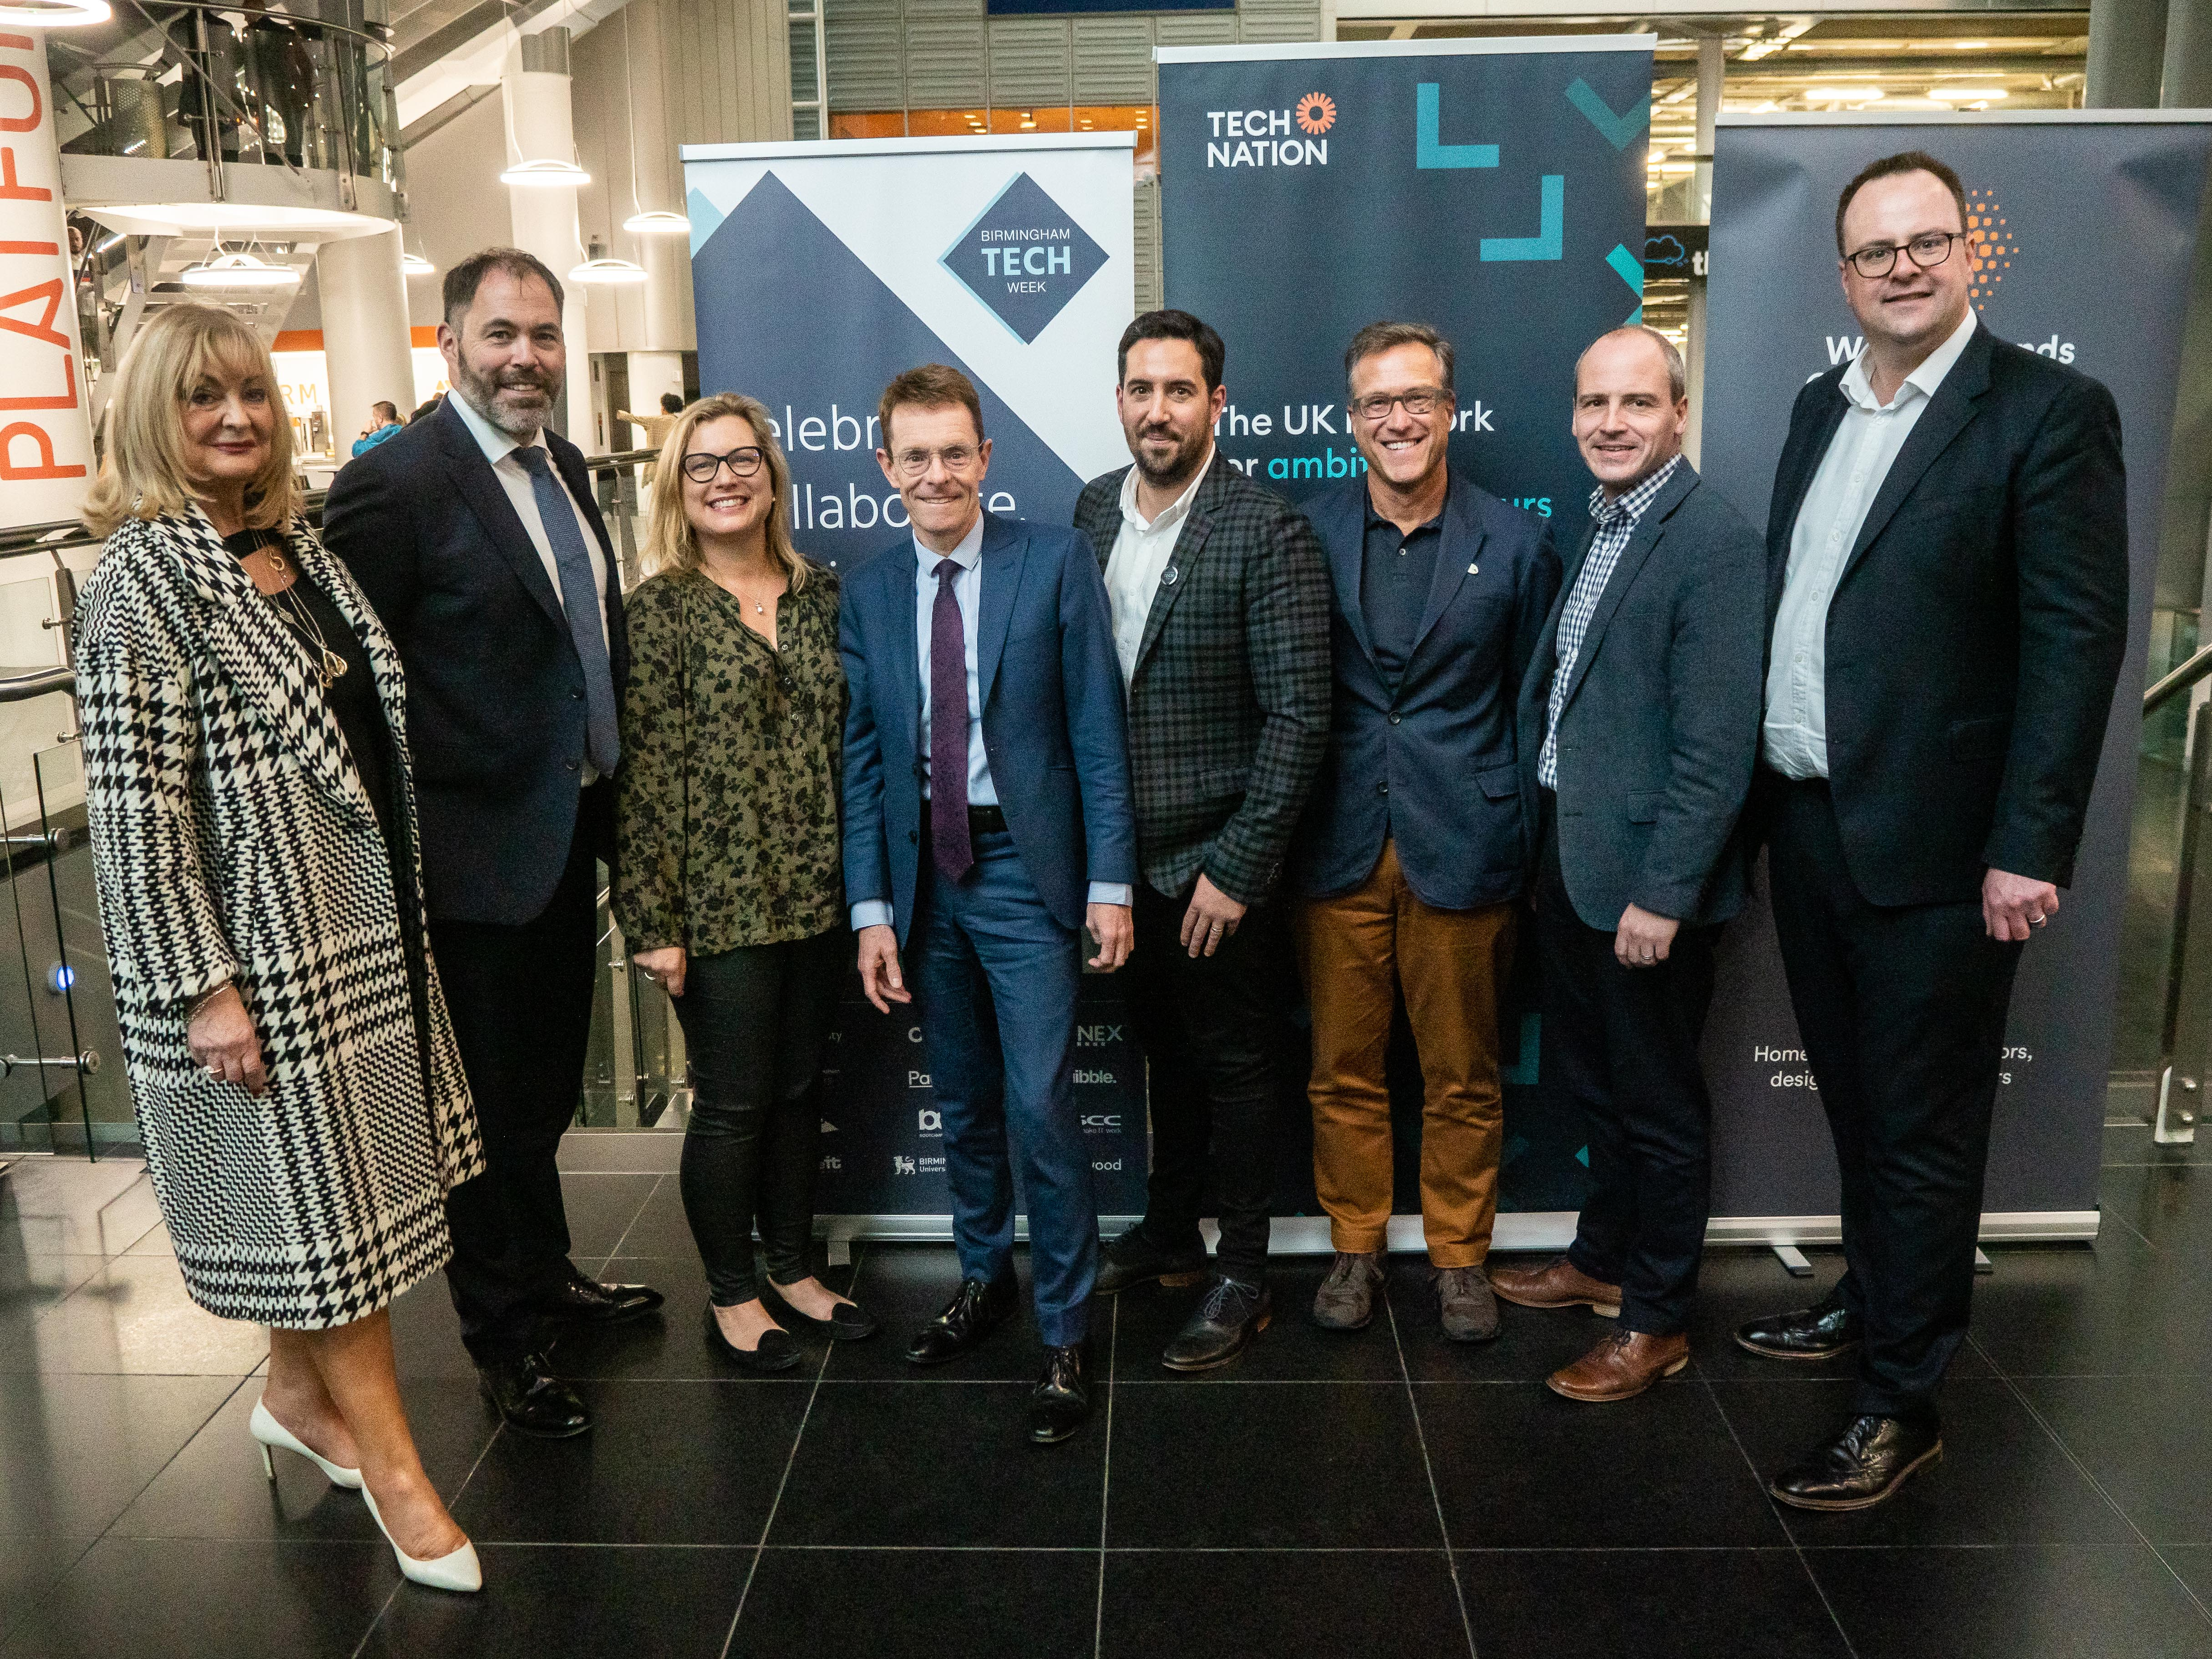 2019-10/1570540018_birmingham-tech-week-launch-speakers